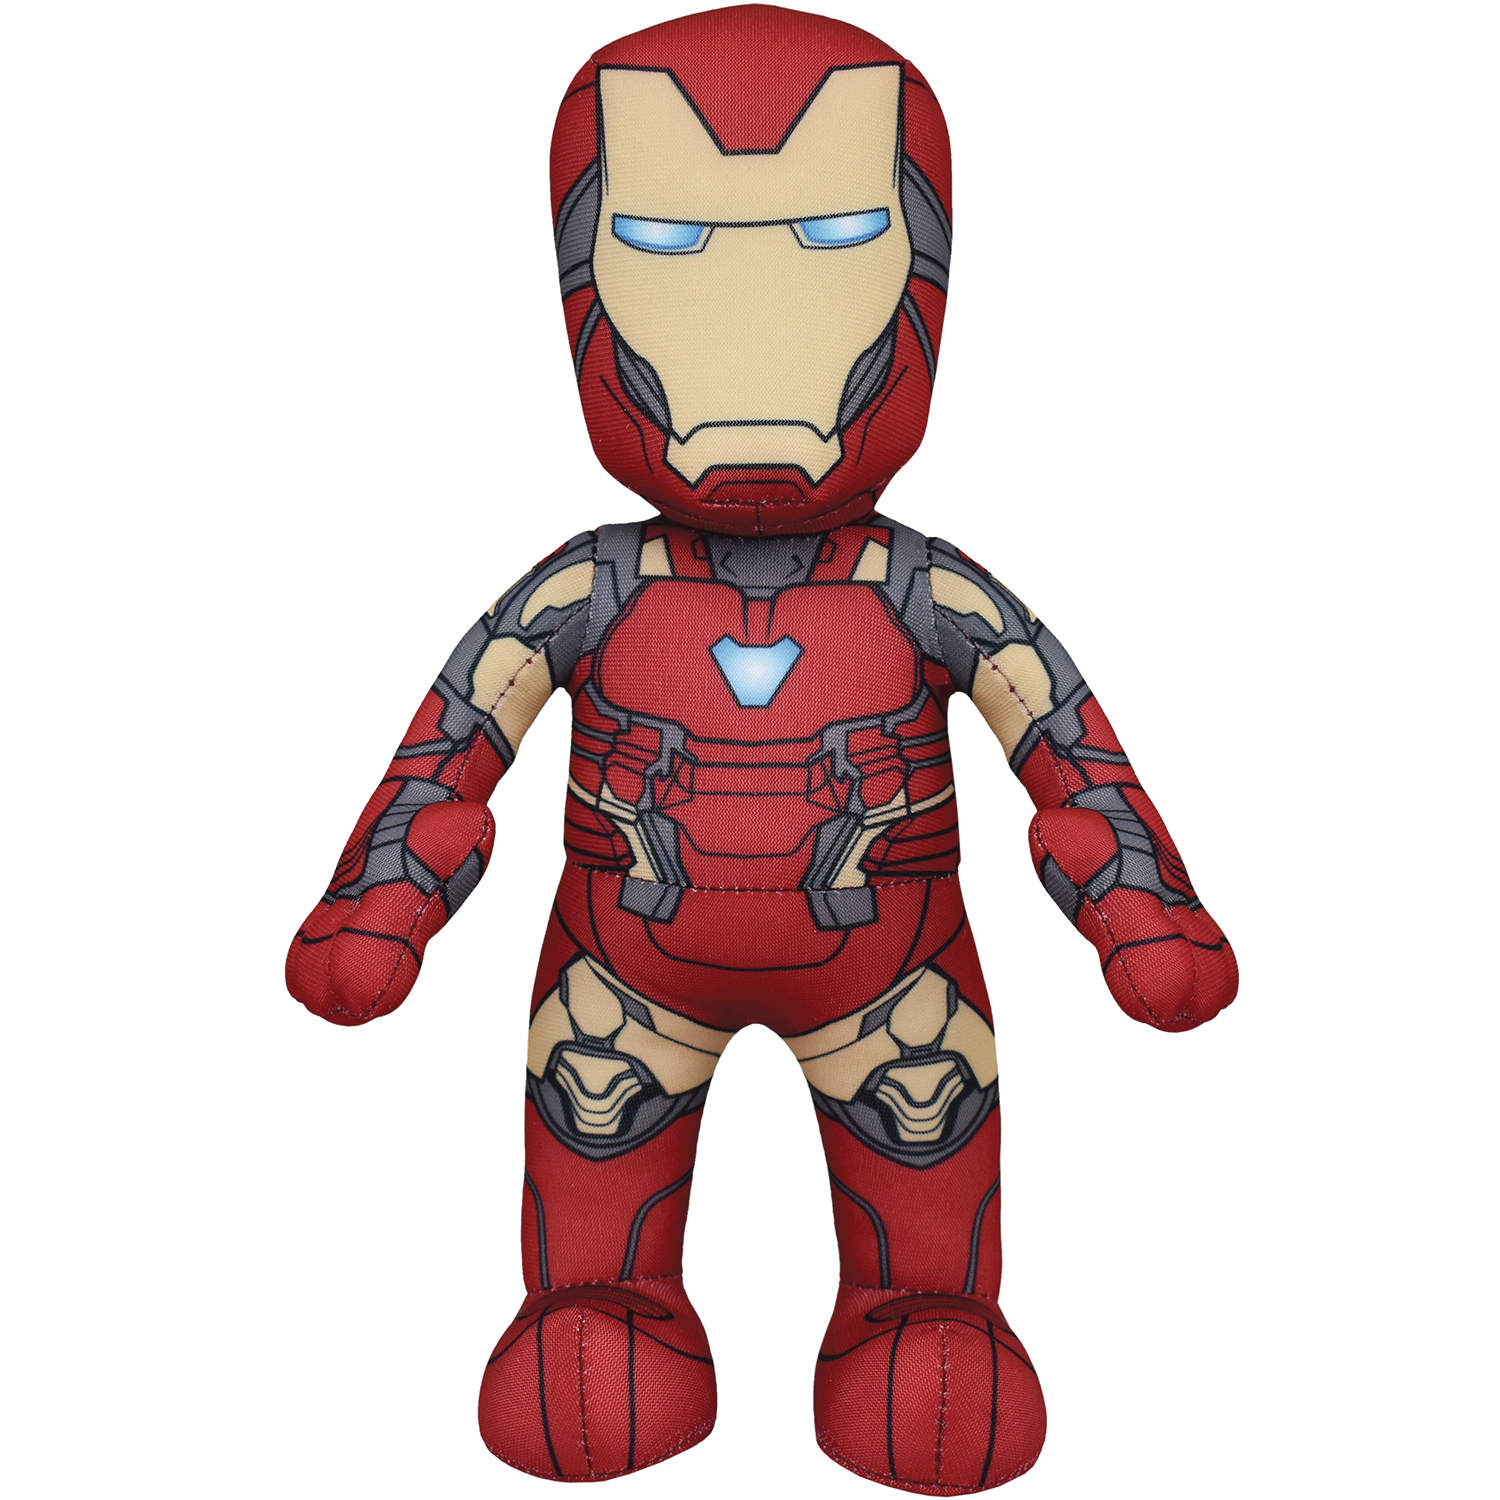 MARVEL HEROES IRON MAN 10IN PLUSH FIGURE